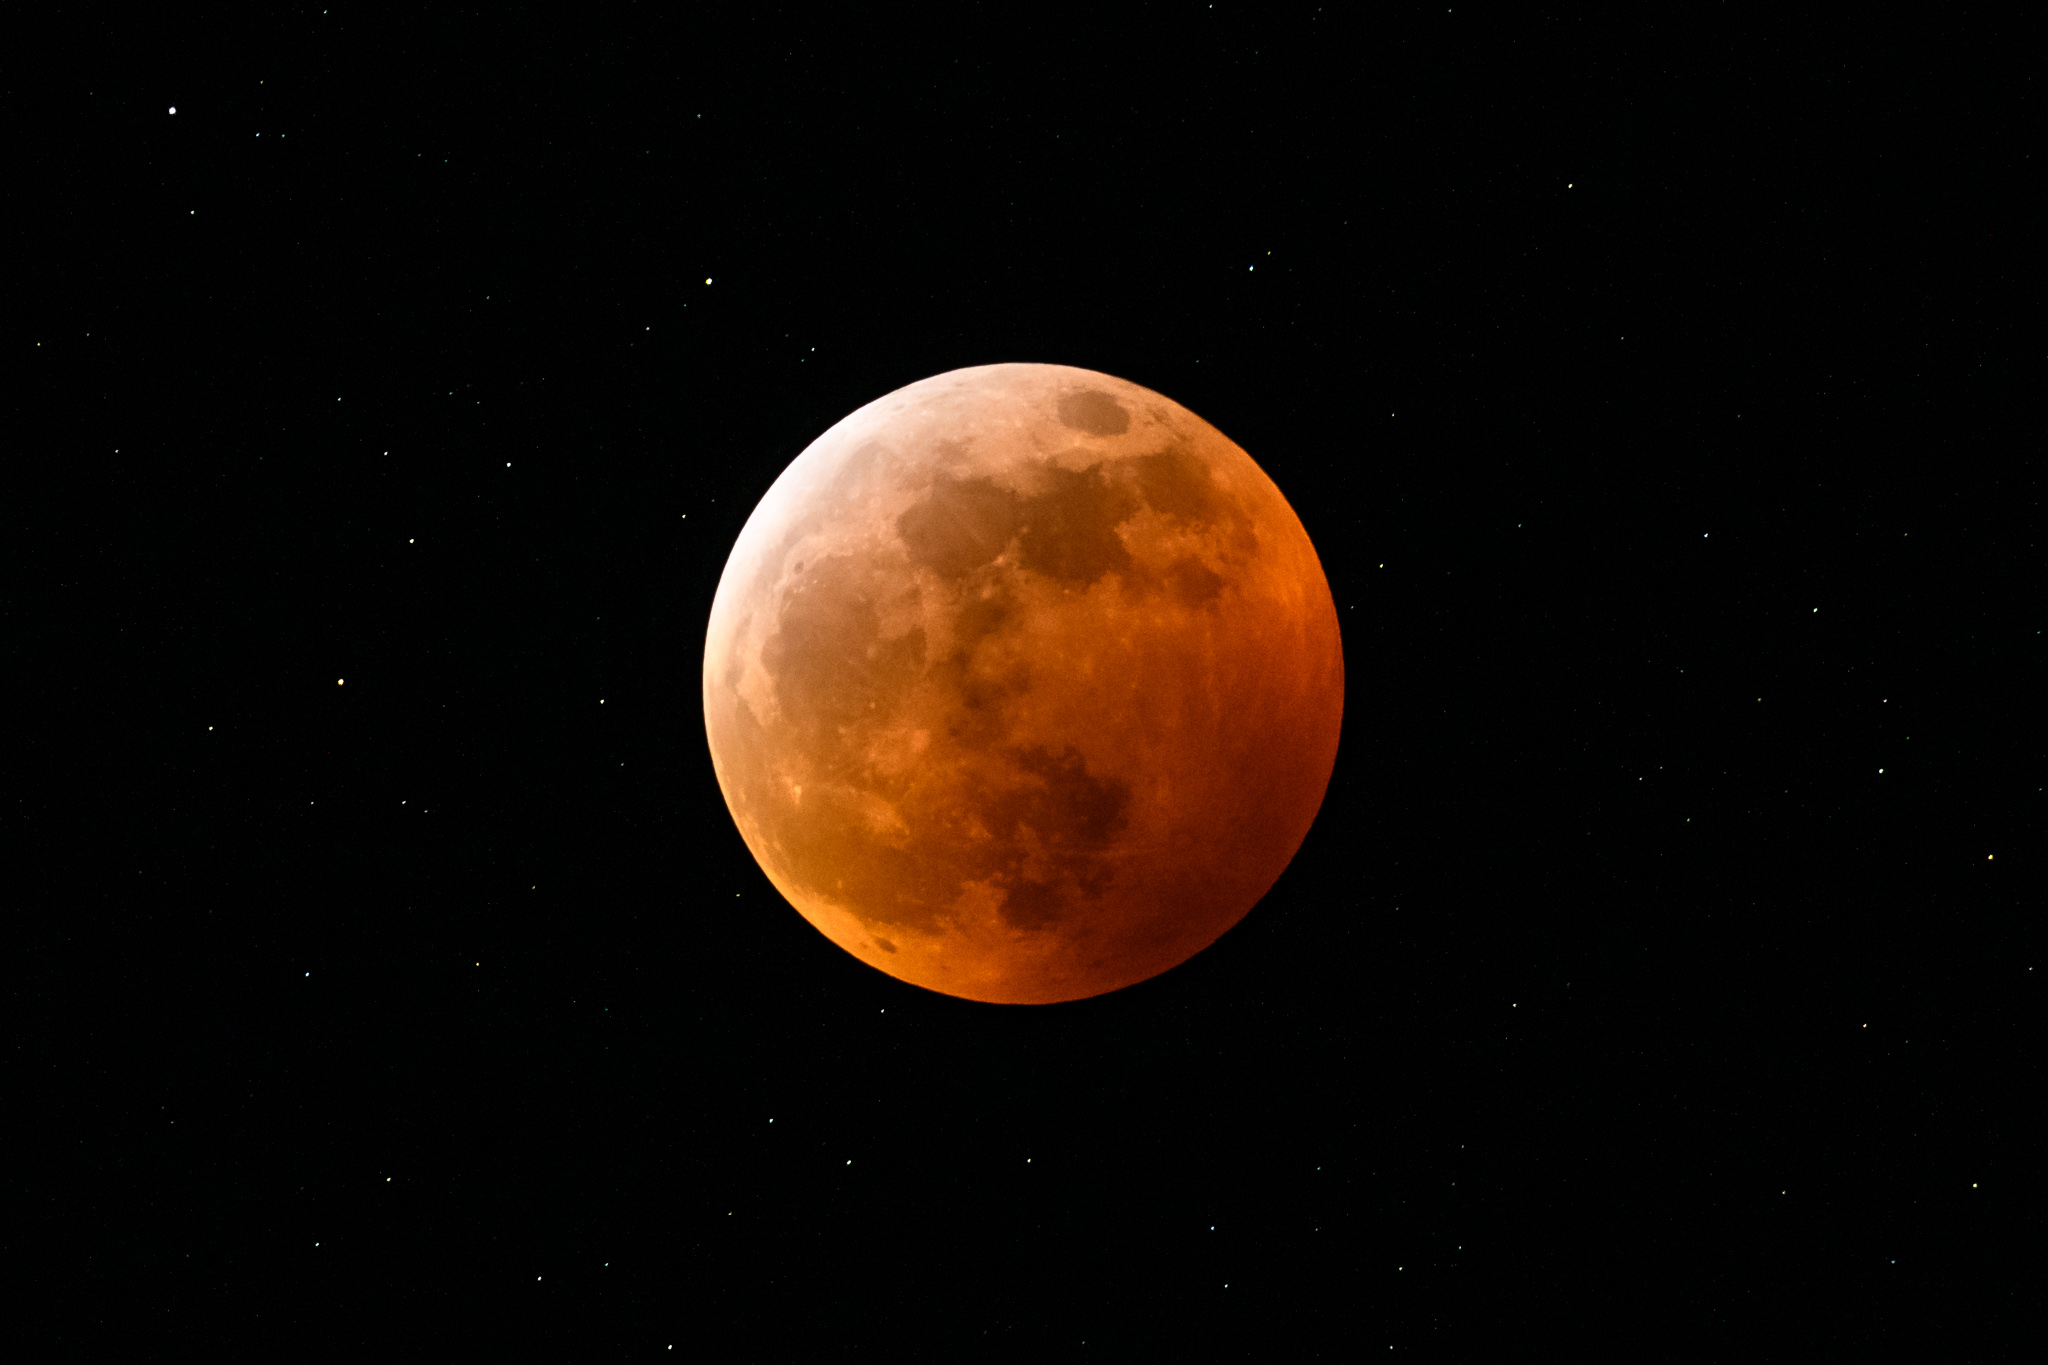 Lunar Eclipse – January 20, 2019